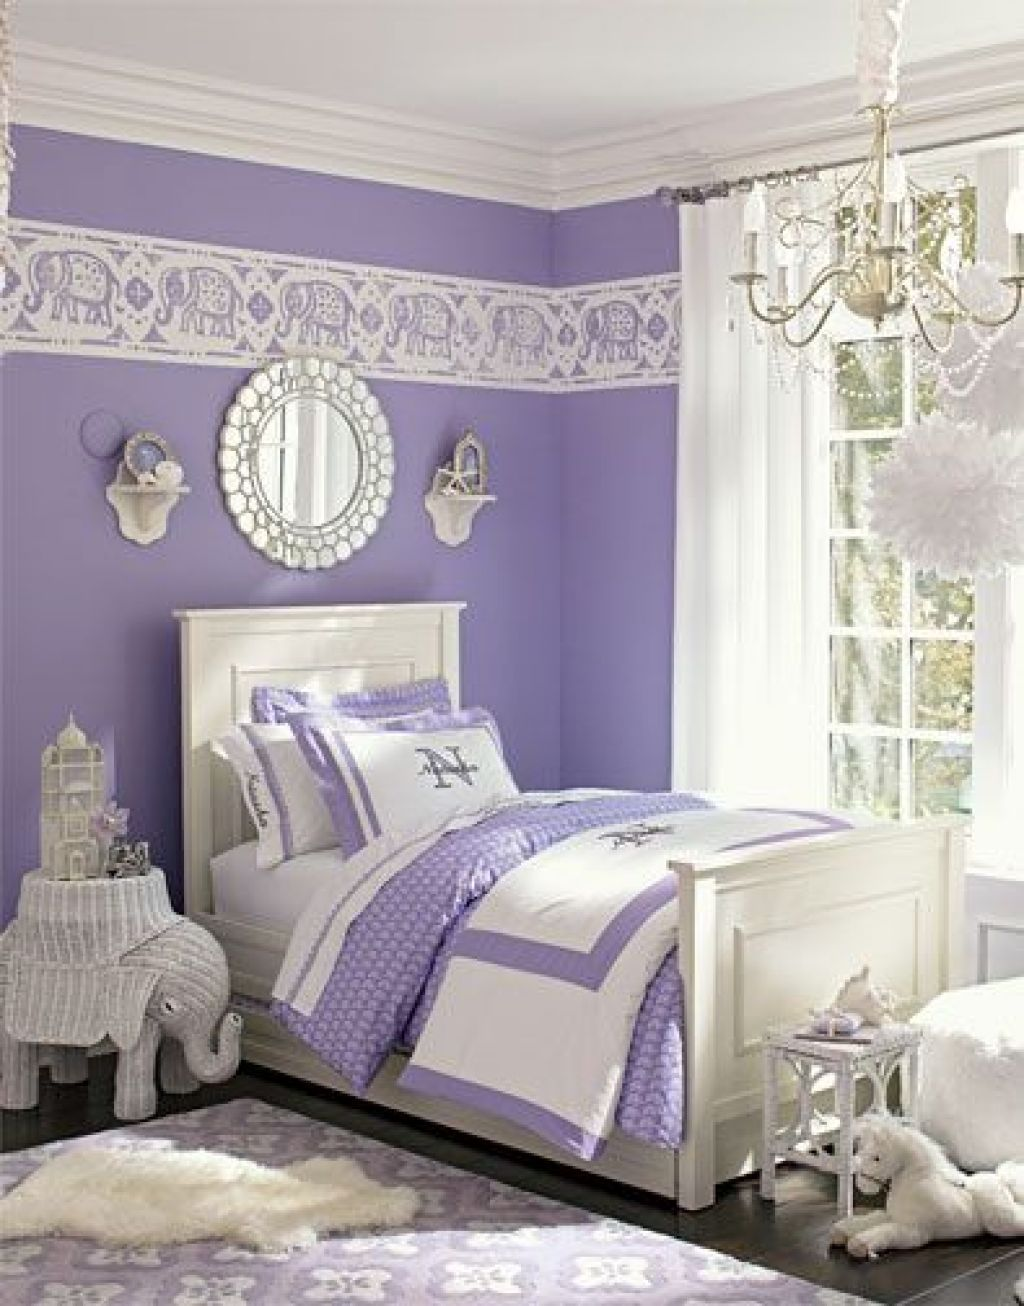 Bedroom design for girls purple - Bedroom Girl Purple Bedroom Ideas Teenage Girl Bedroom Ideas With Purple Color Wall And